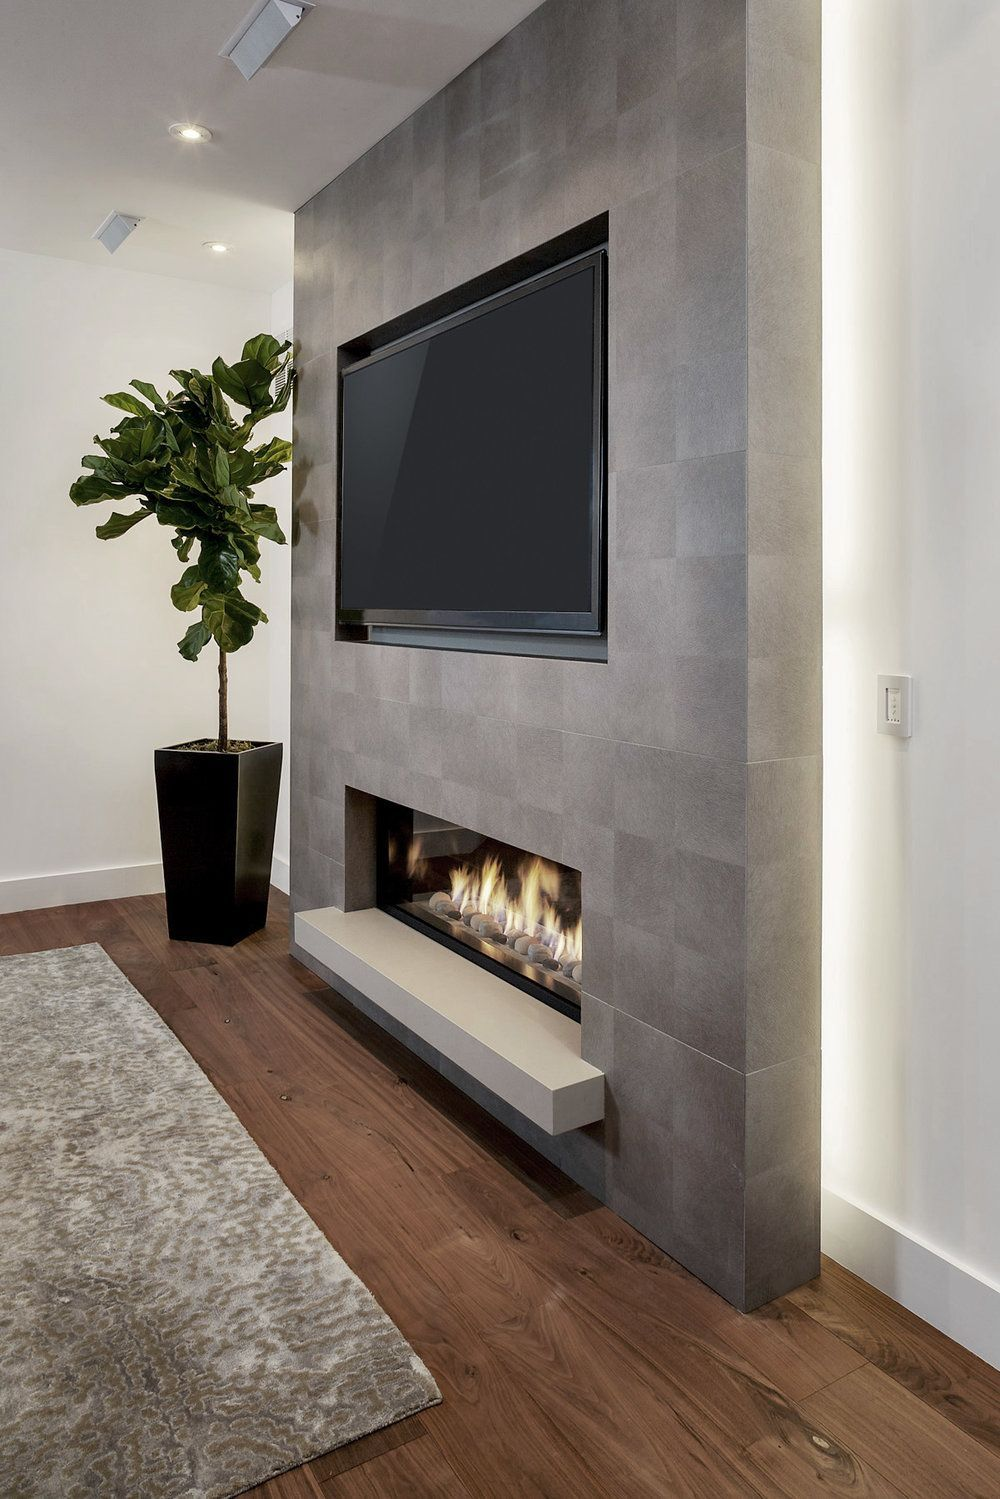 Touchstone The Sideline 50 Recessed Electric Fireplace 80004 Salvabrani Salvabrani Basement Fireplace Recessed Electric Fireplace Fireplace Design